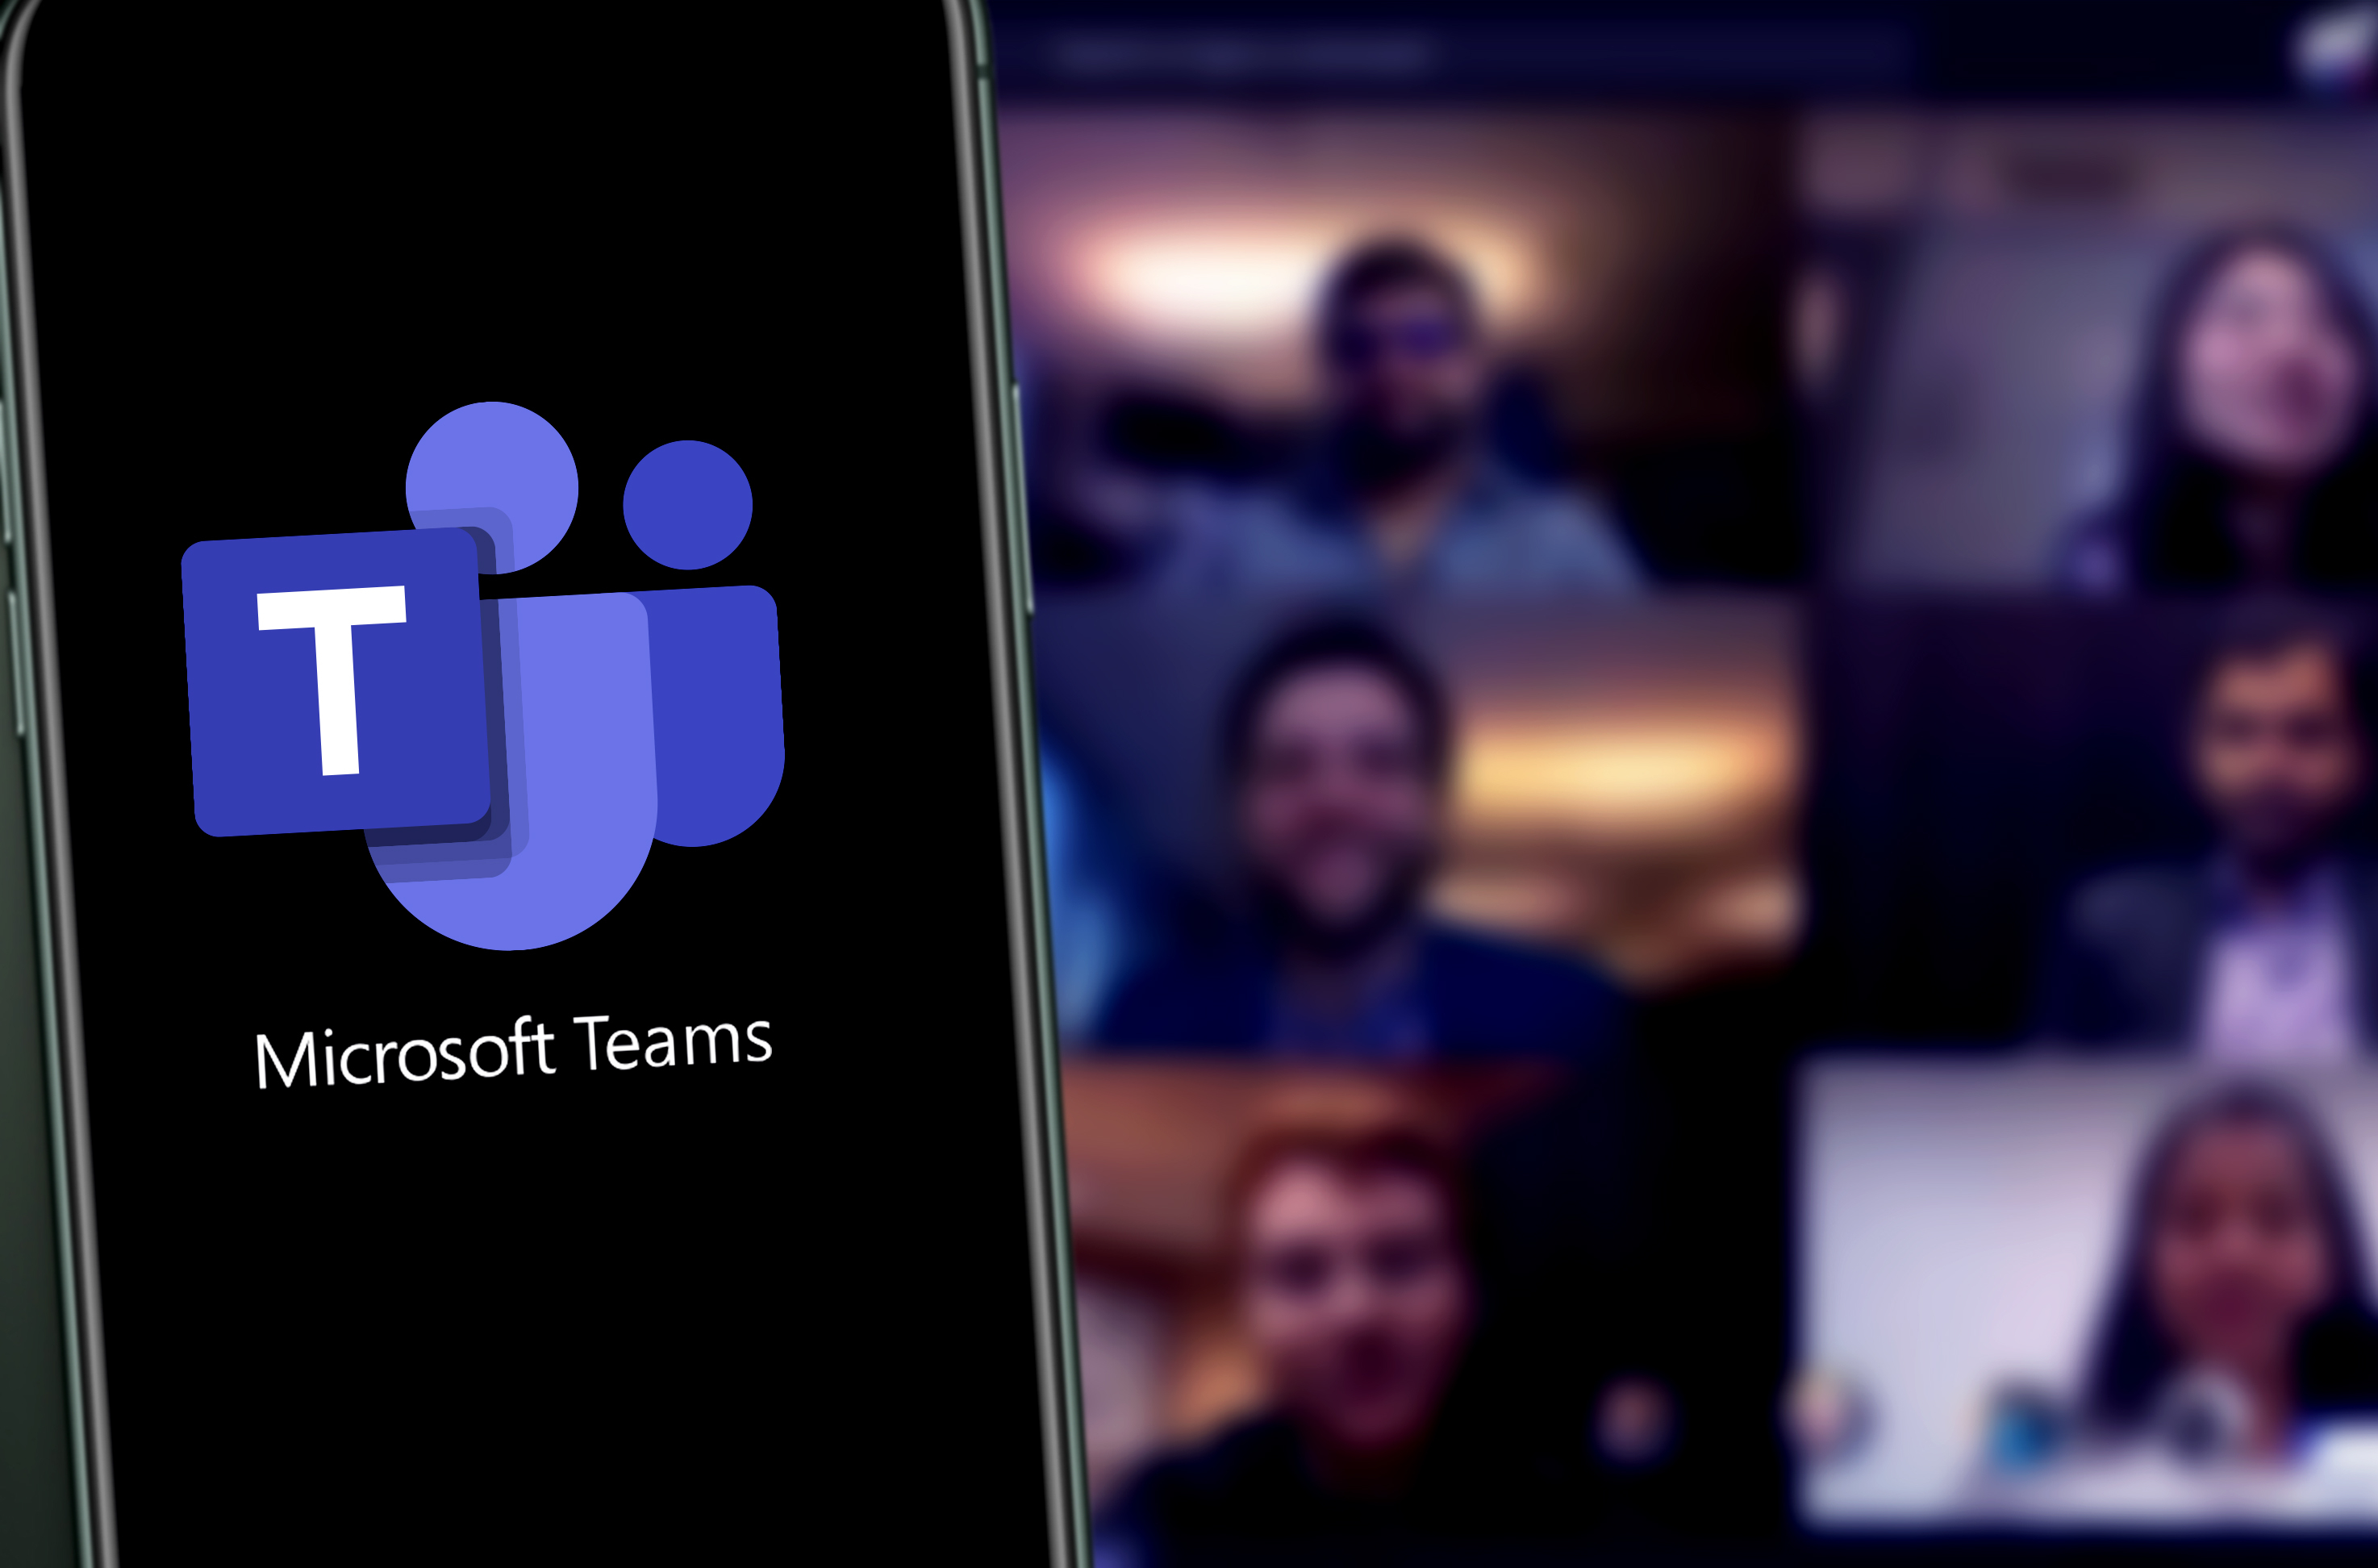 Microsoft Teams users can run one work/school, personal account concurrently